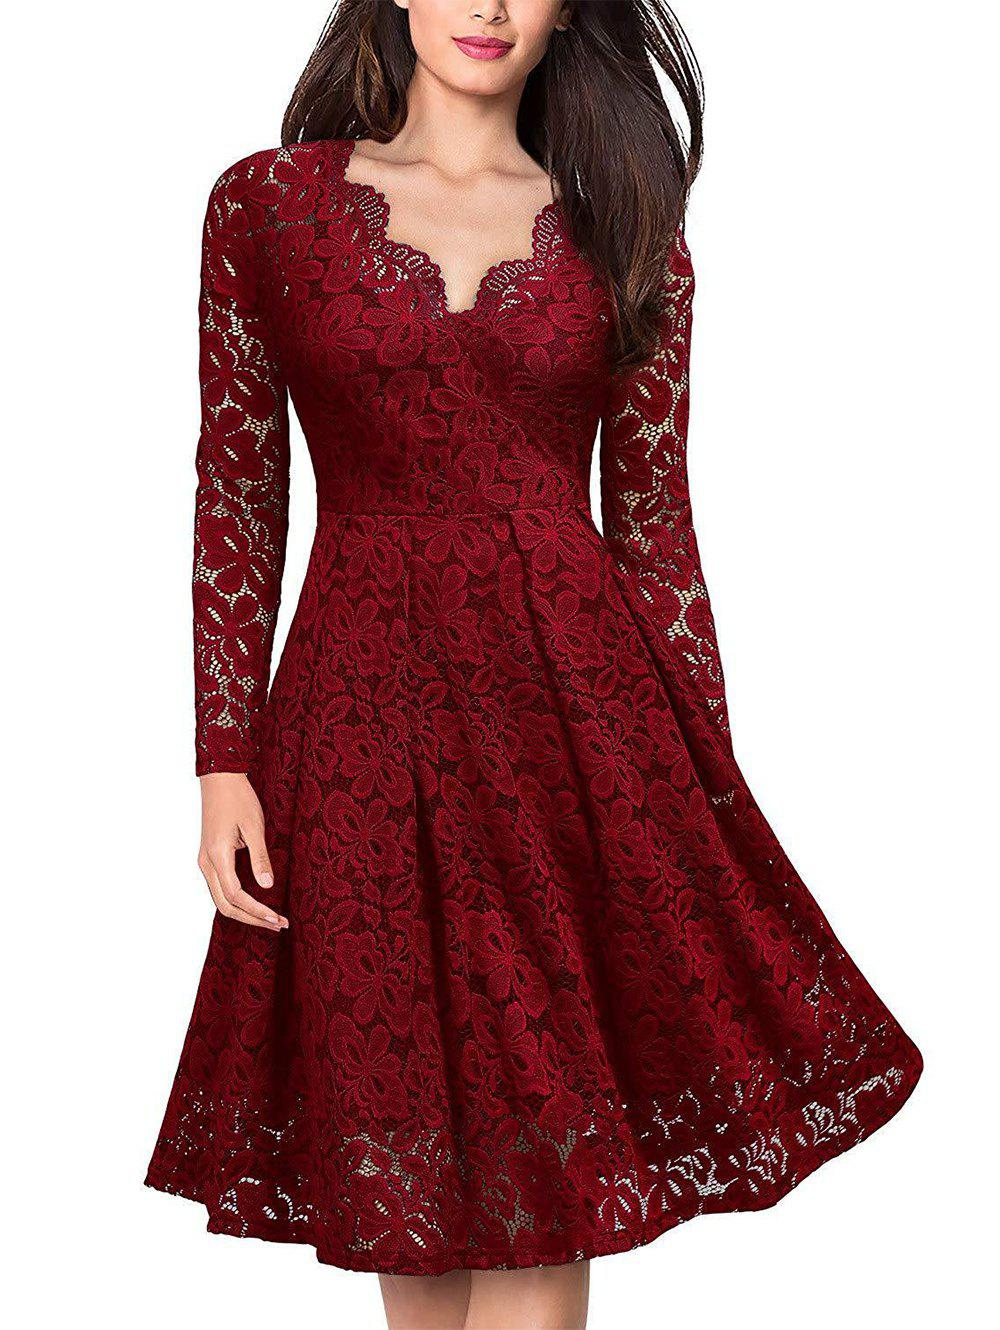 Lace V Neck Long Sleeves Swing Dress - RED WINE L